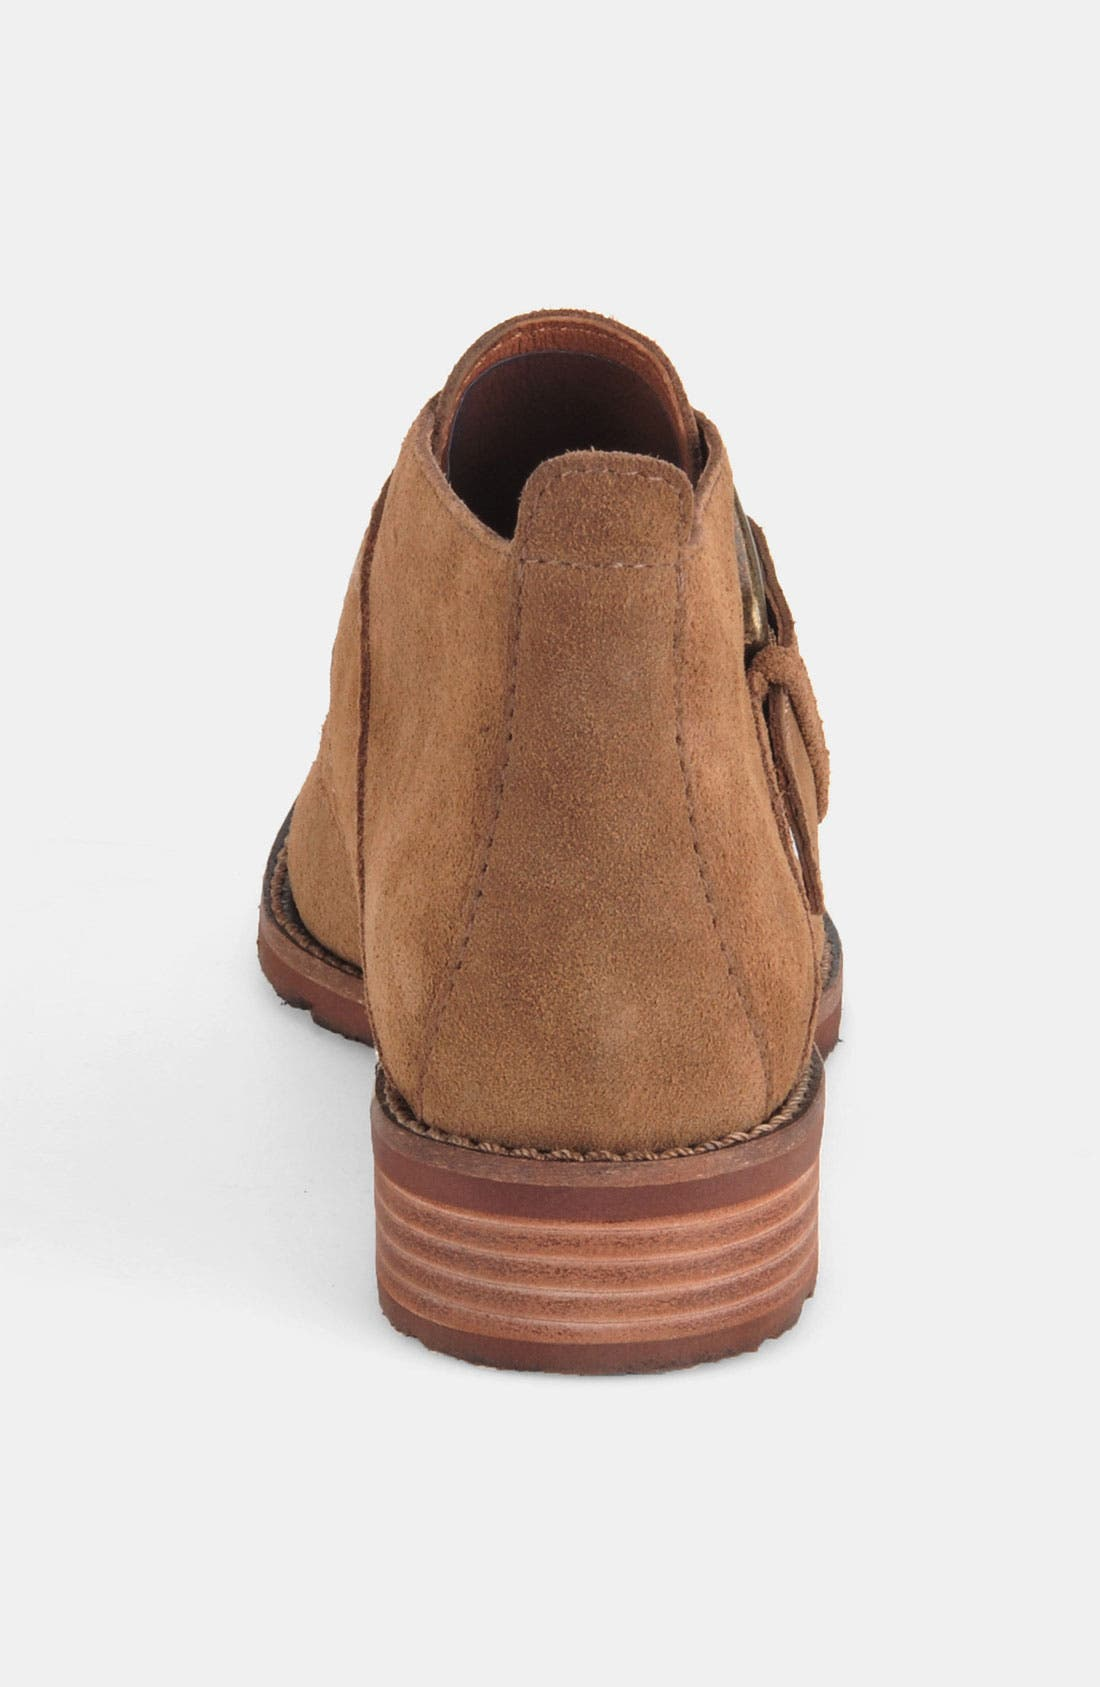 'Boone' Bootie,                             Alternate thumbnail 3, color,                             Earth Suede